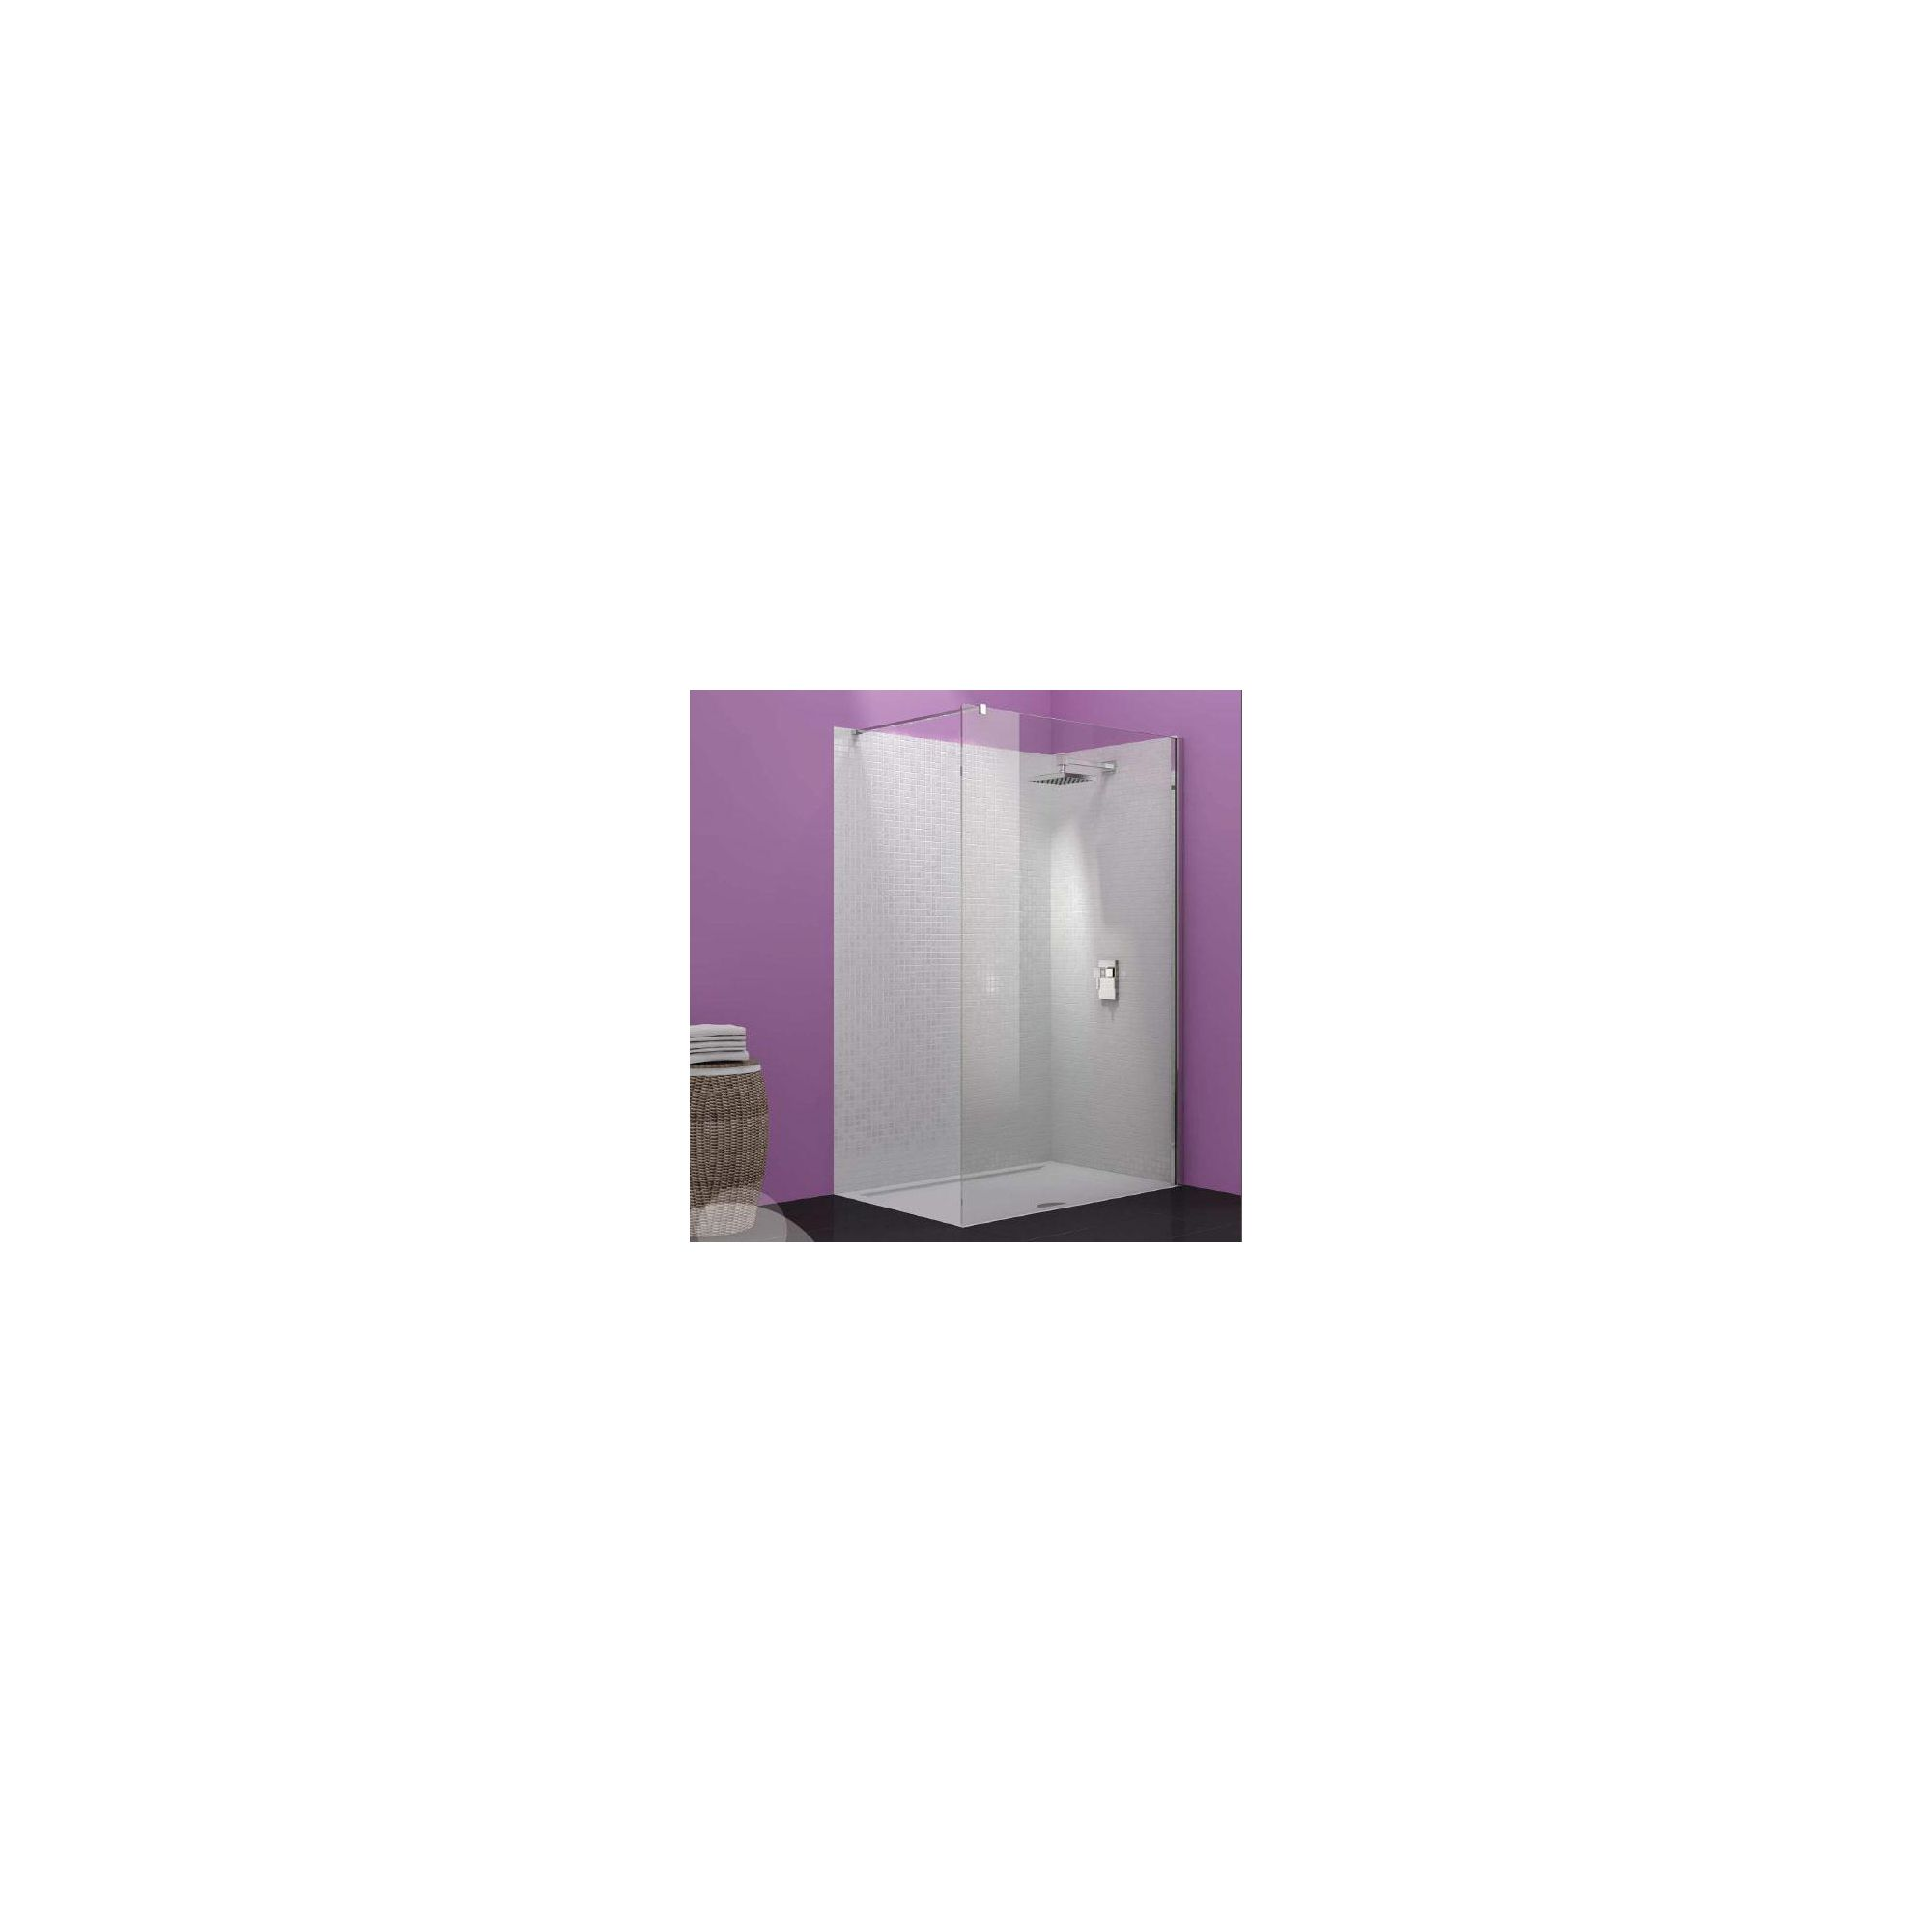 Merlyn Vivid Ten Wet Room Shower Enclosure, 800mm x 800mm, Low Profile Tray, 10mm Glass at Tesco Direct